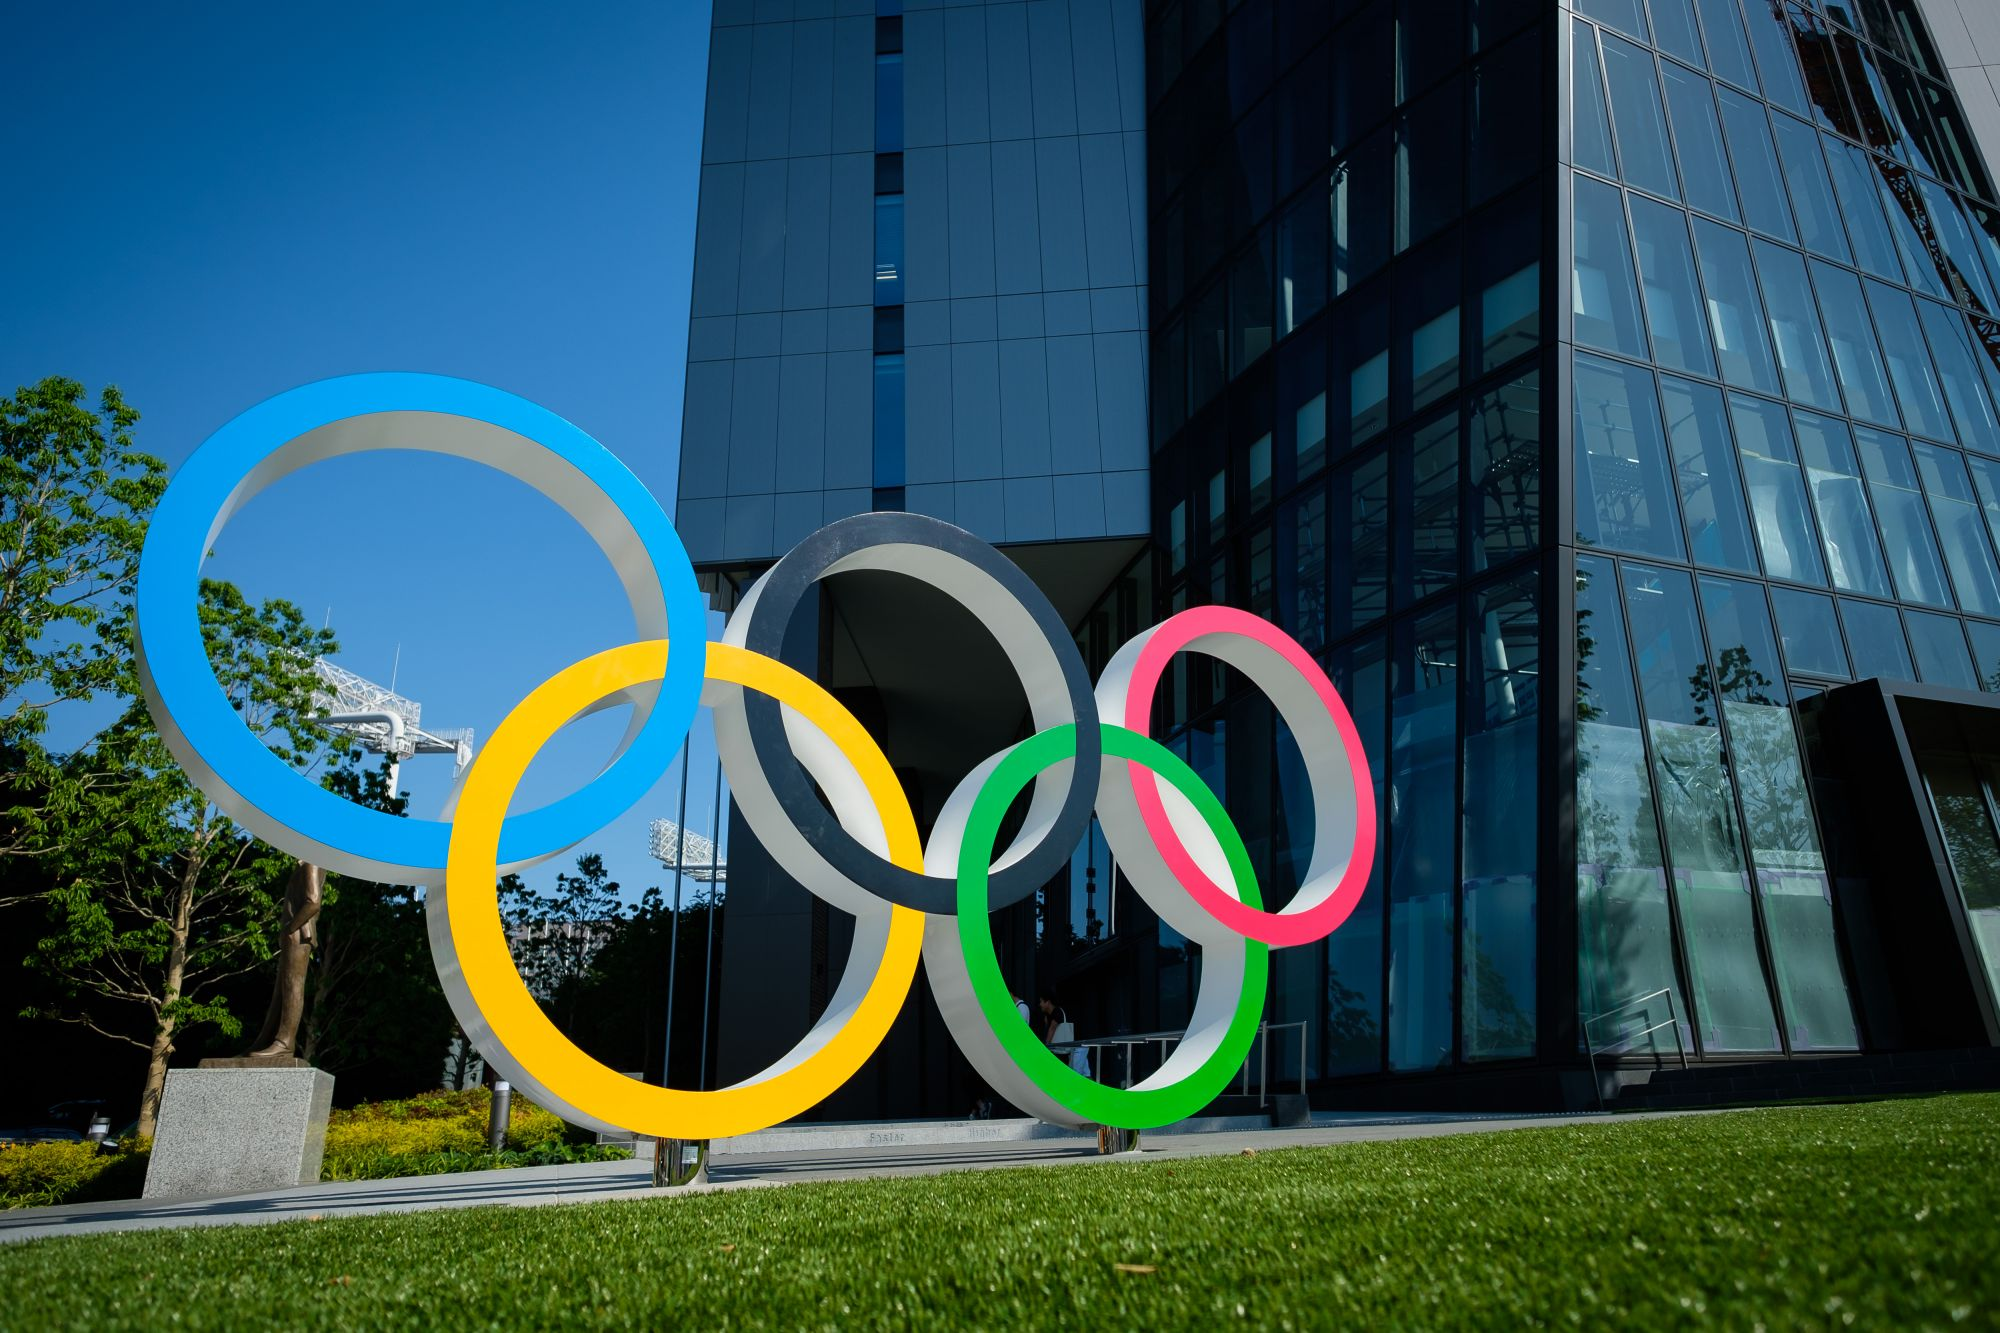 TOKYO, JAPAN - 2019/05/25: Olympic rings are displayed at Japan Sport Olympic Square near Olympic Stadium. Japan will host the Tokyo 2020 Summer Olympics from July 24 to August 9 next year. (Photo by Nicolas Datiche/LightRocket via Getty Images)